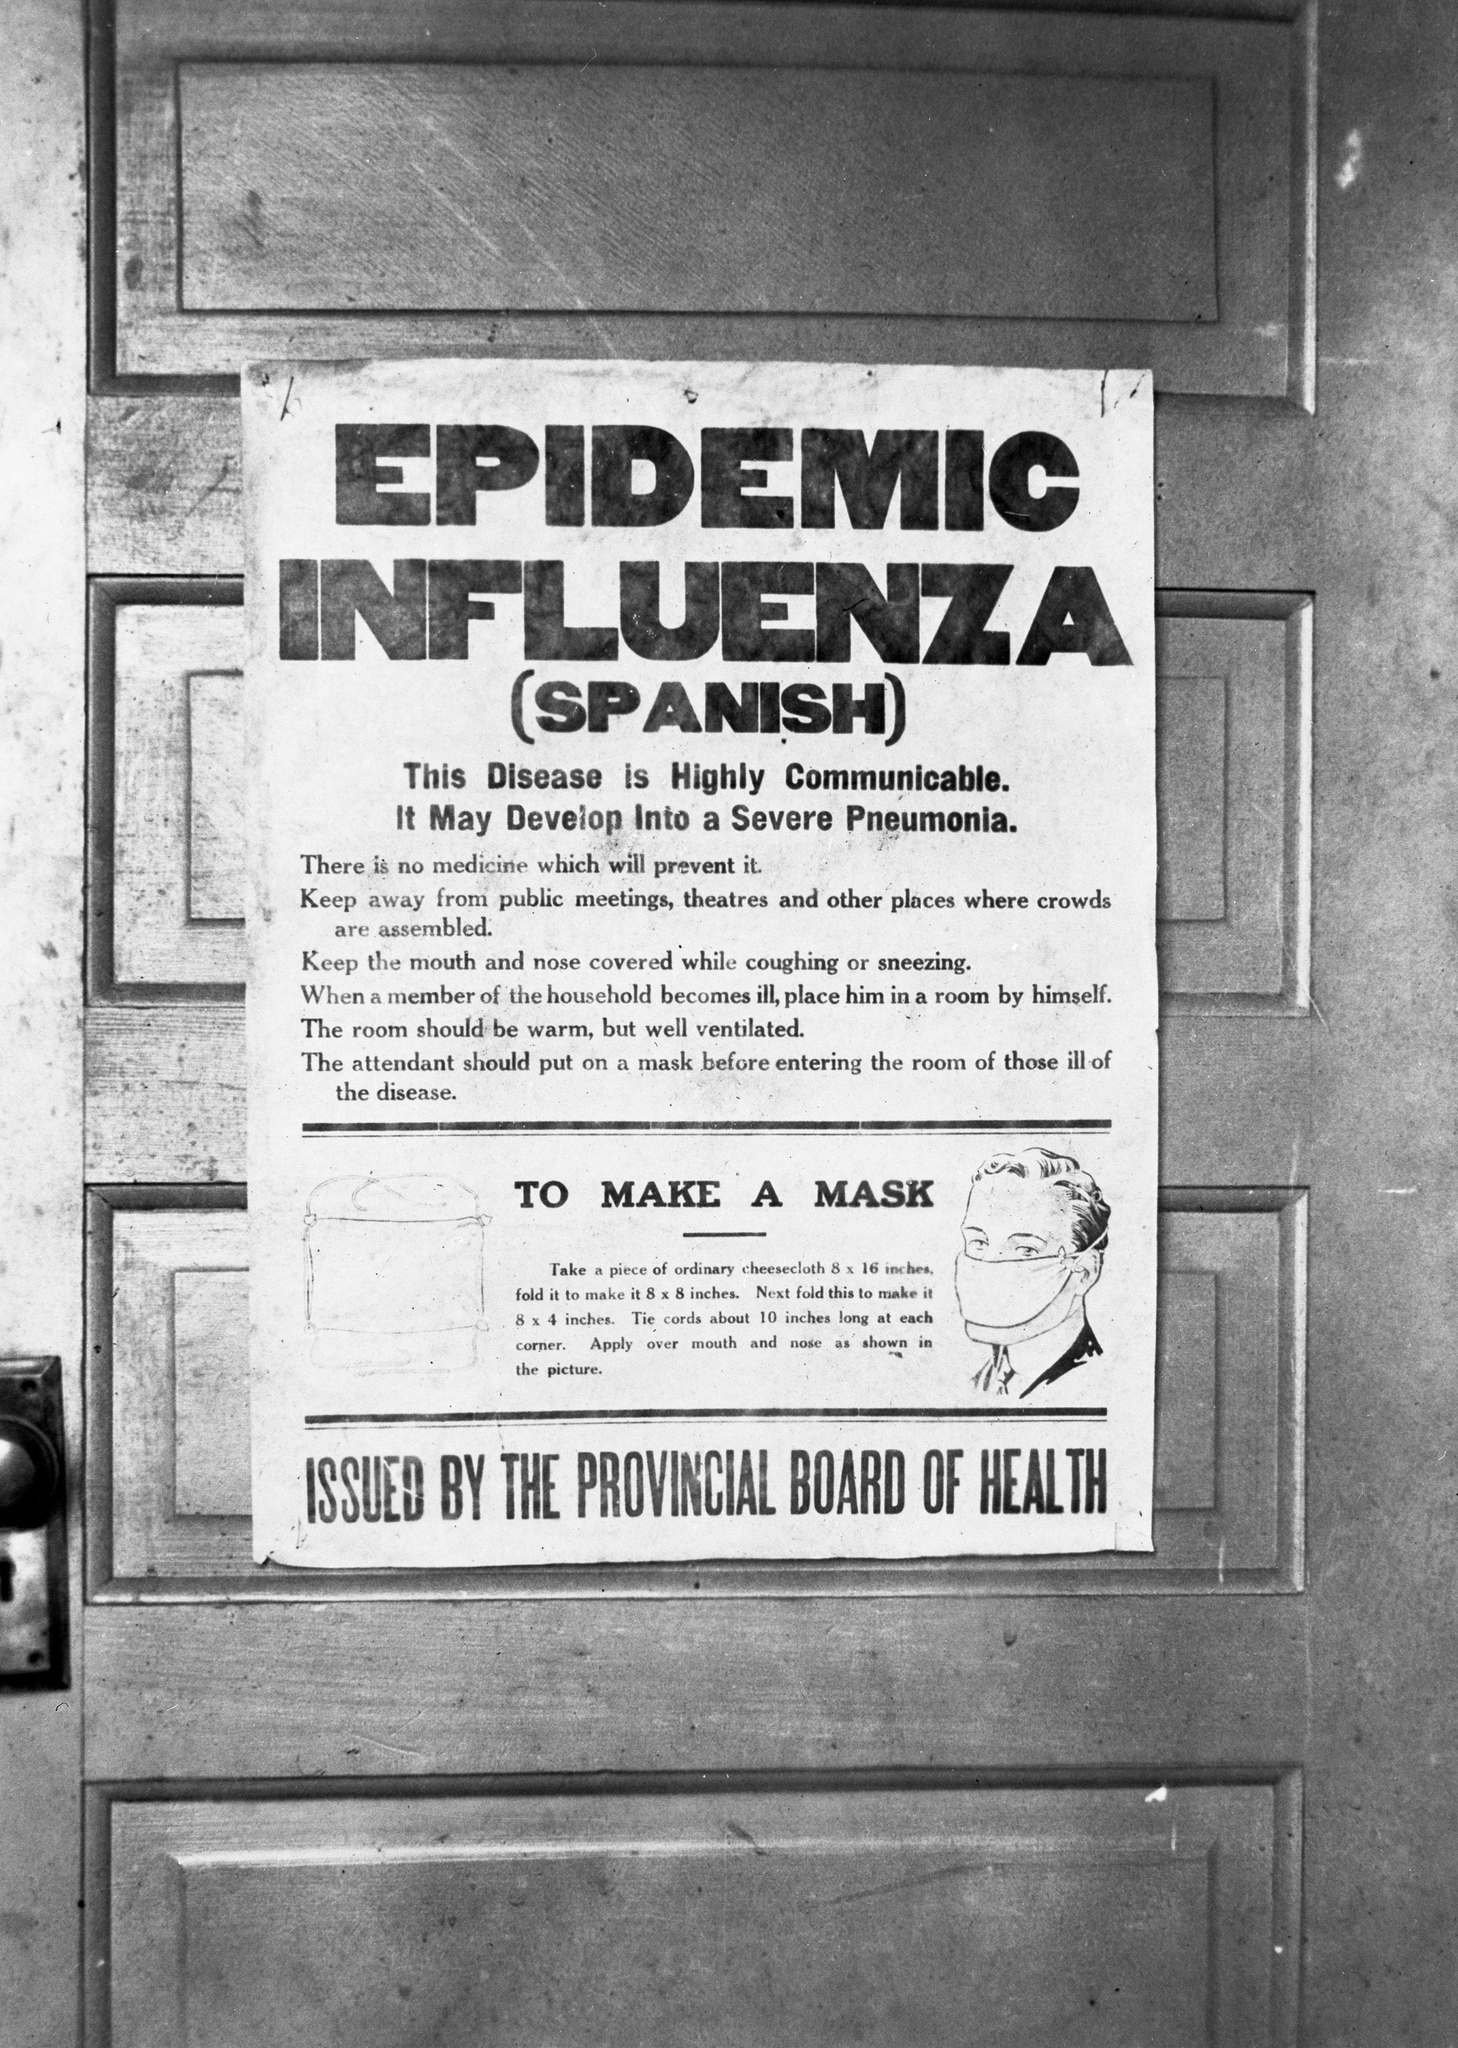 A poster issued by the provincial board of health about the influenza pandemic in Alberta in 1918.